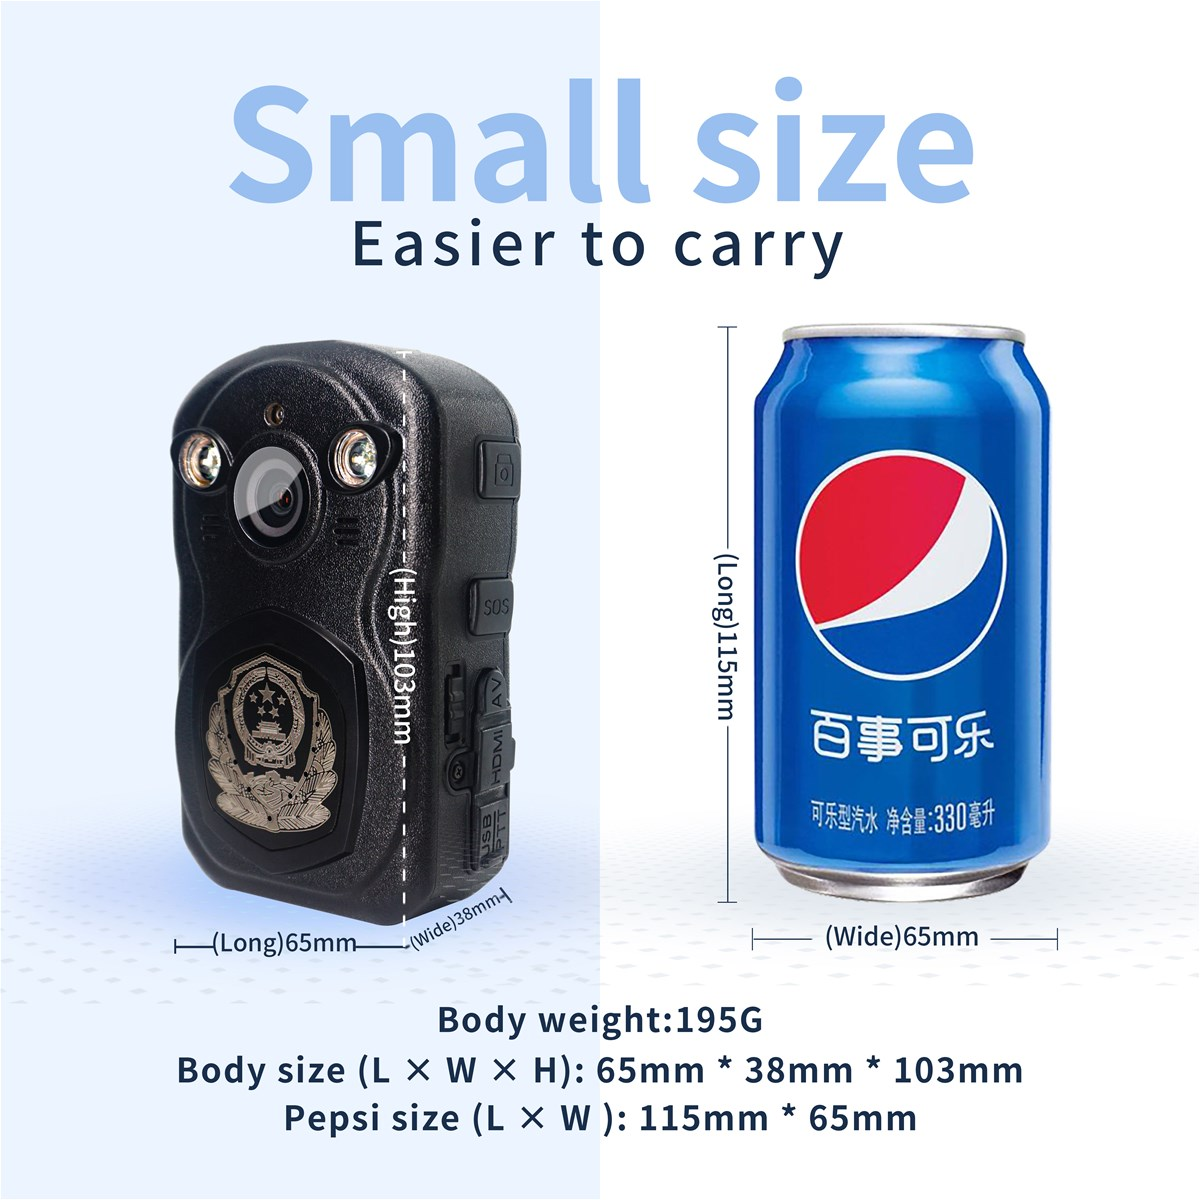 ONETHINGCAM 5G the Smallest Portable Camera For Security Police Camera HD 1080P 30fps 170 Degree Wide Angle Lens